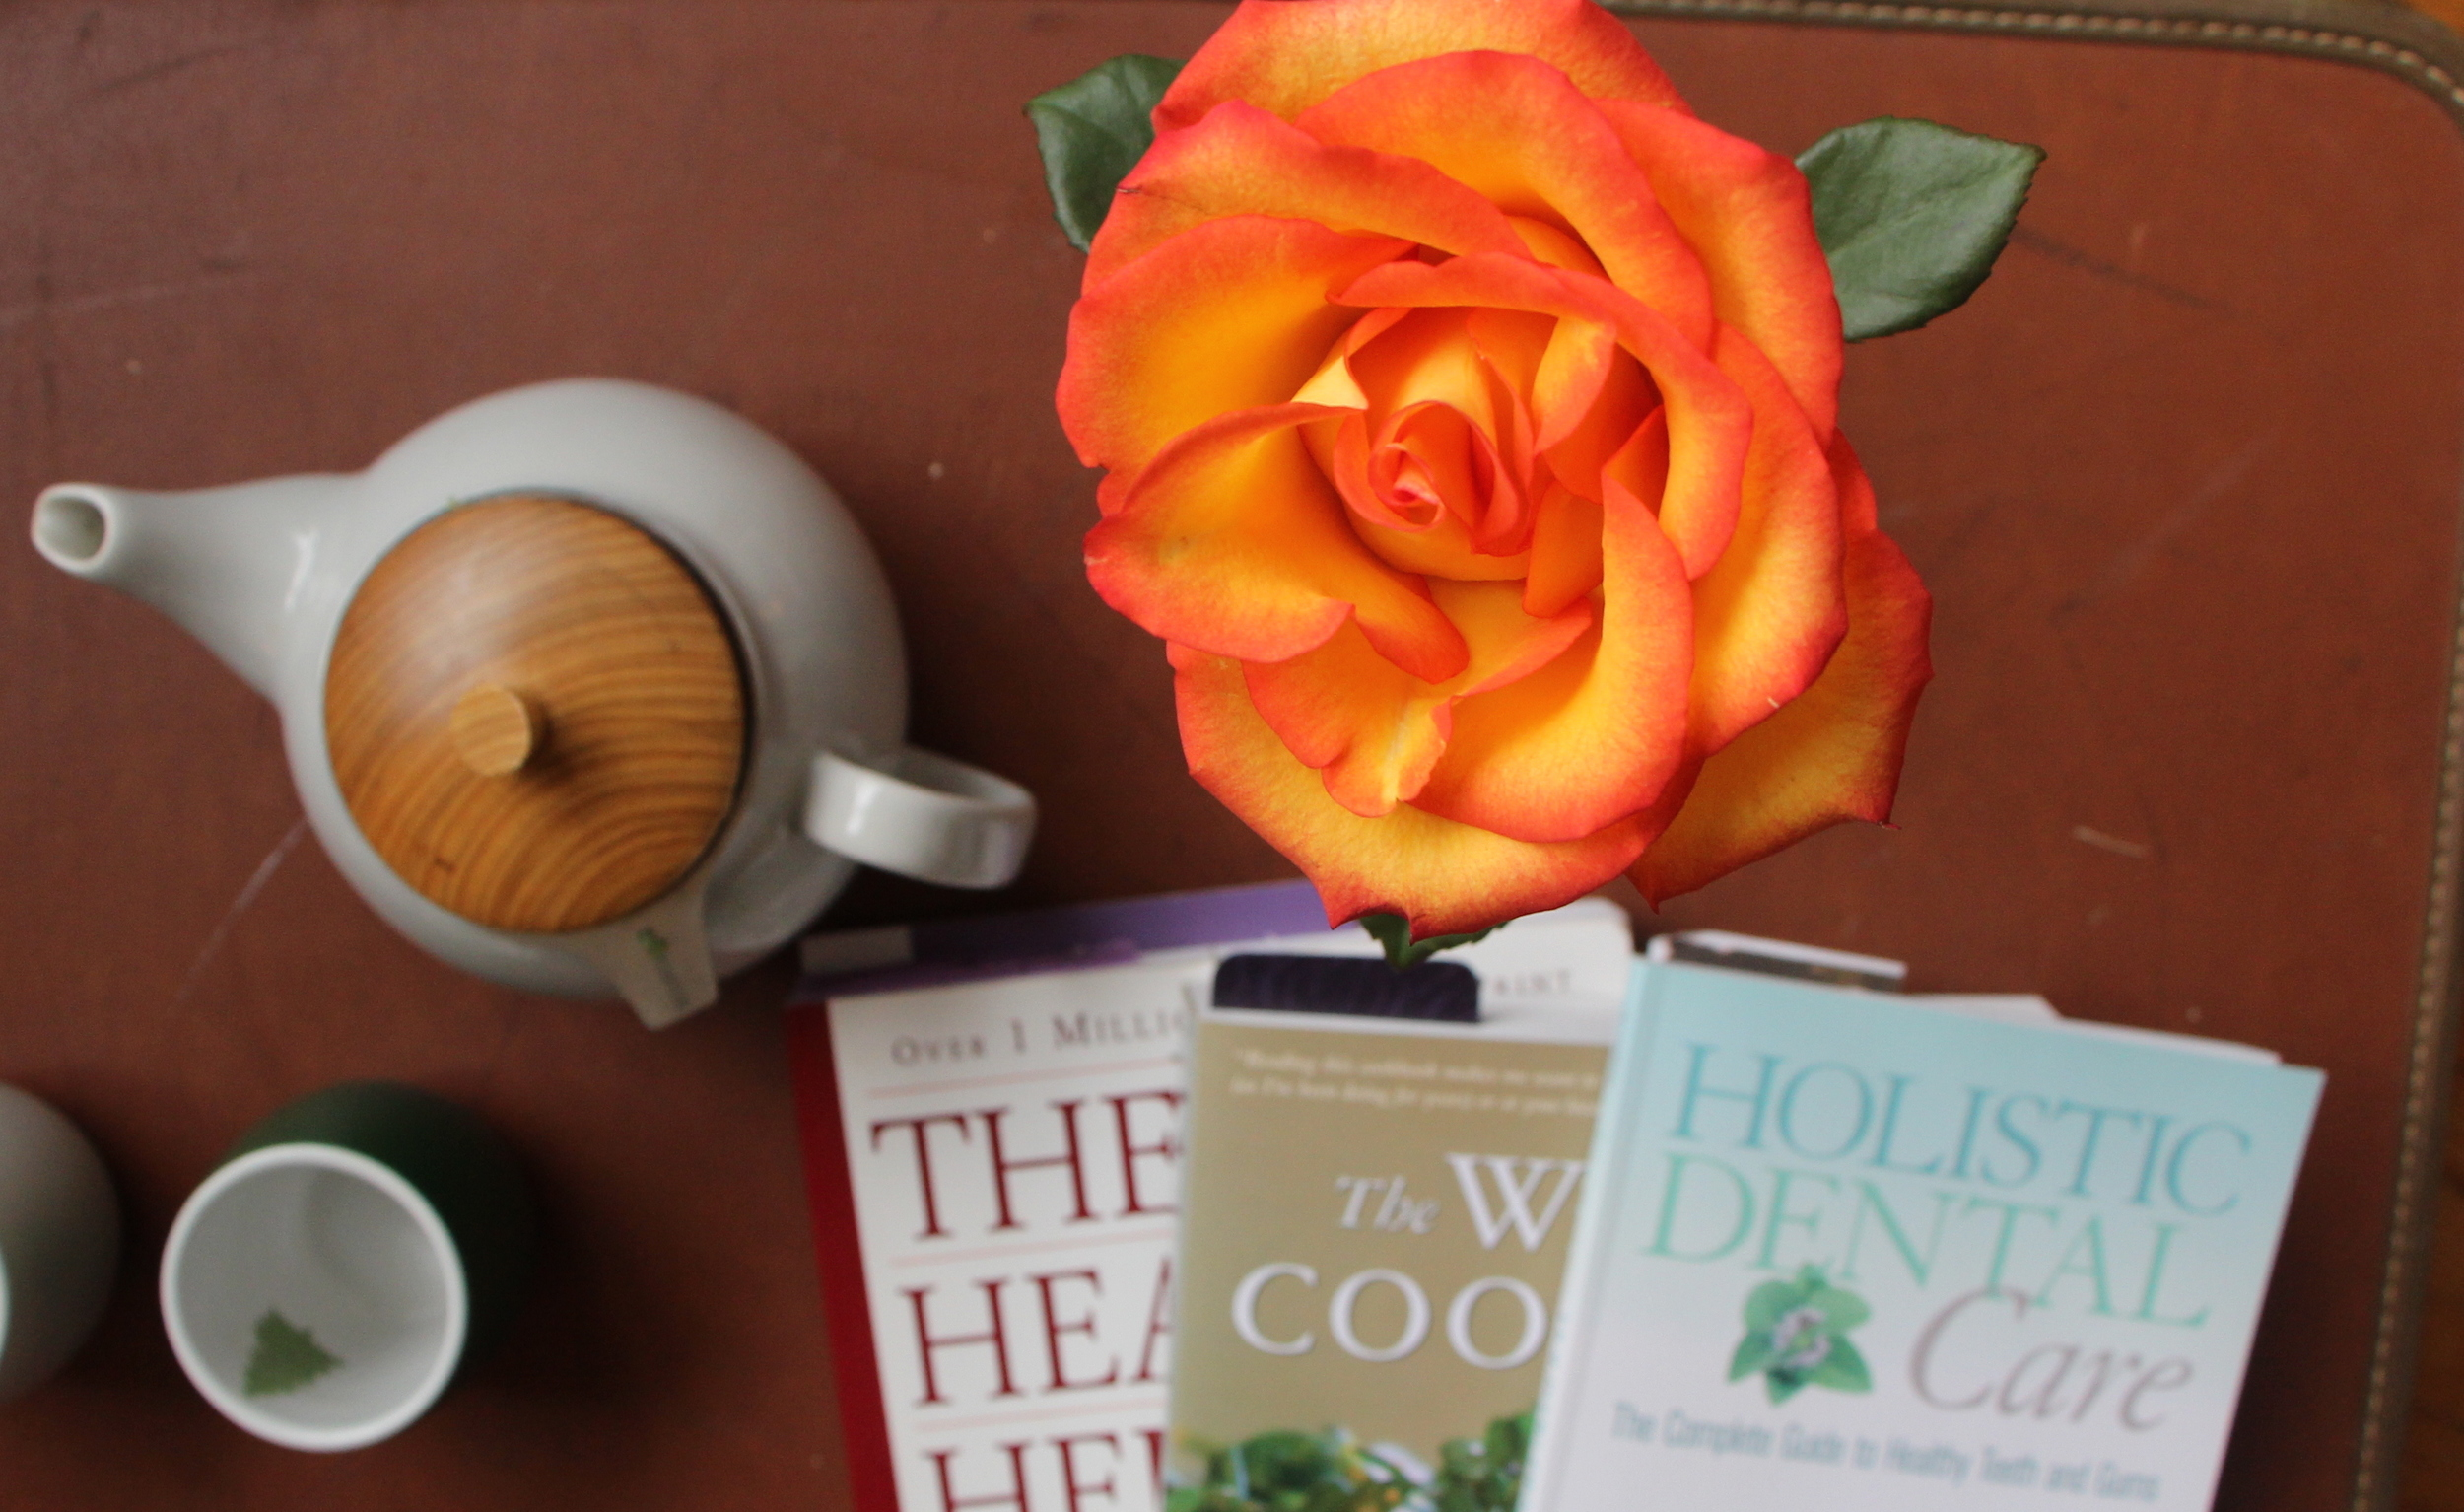 Tea, flowers and good reads.